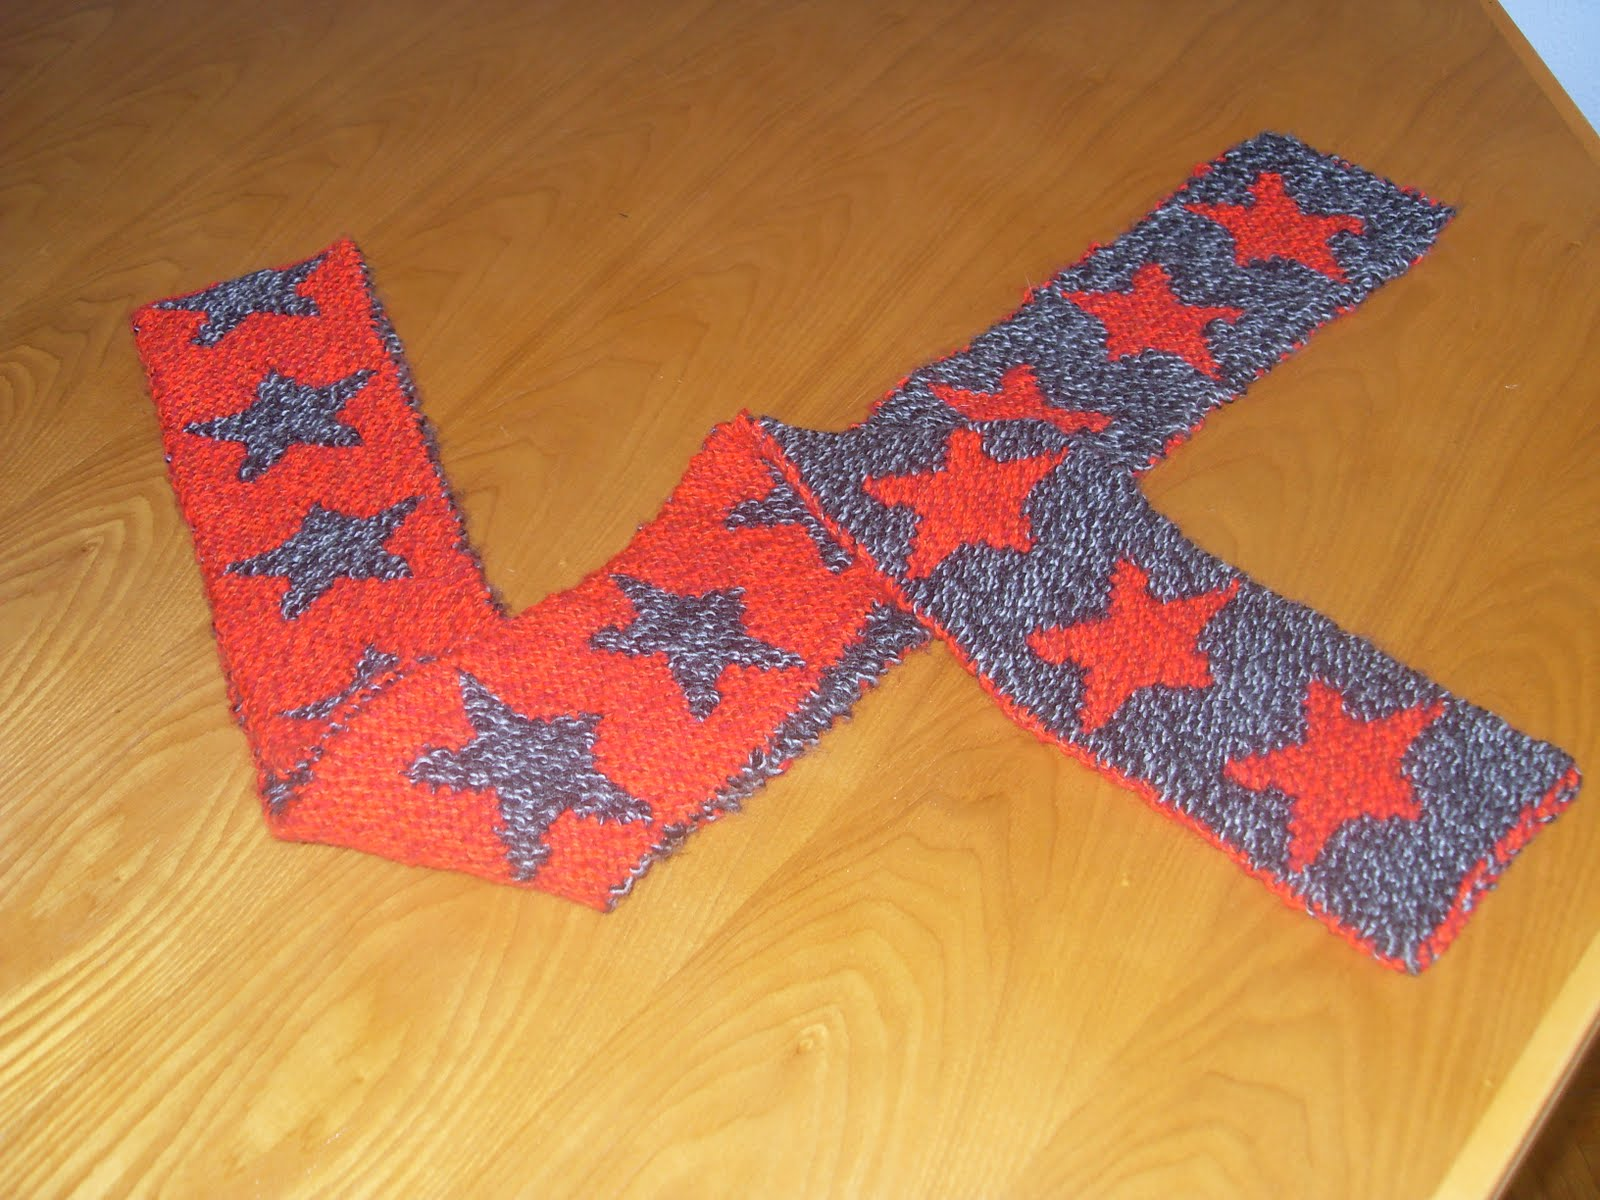 Fun Crafts For All: Double-knit Star Scarf